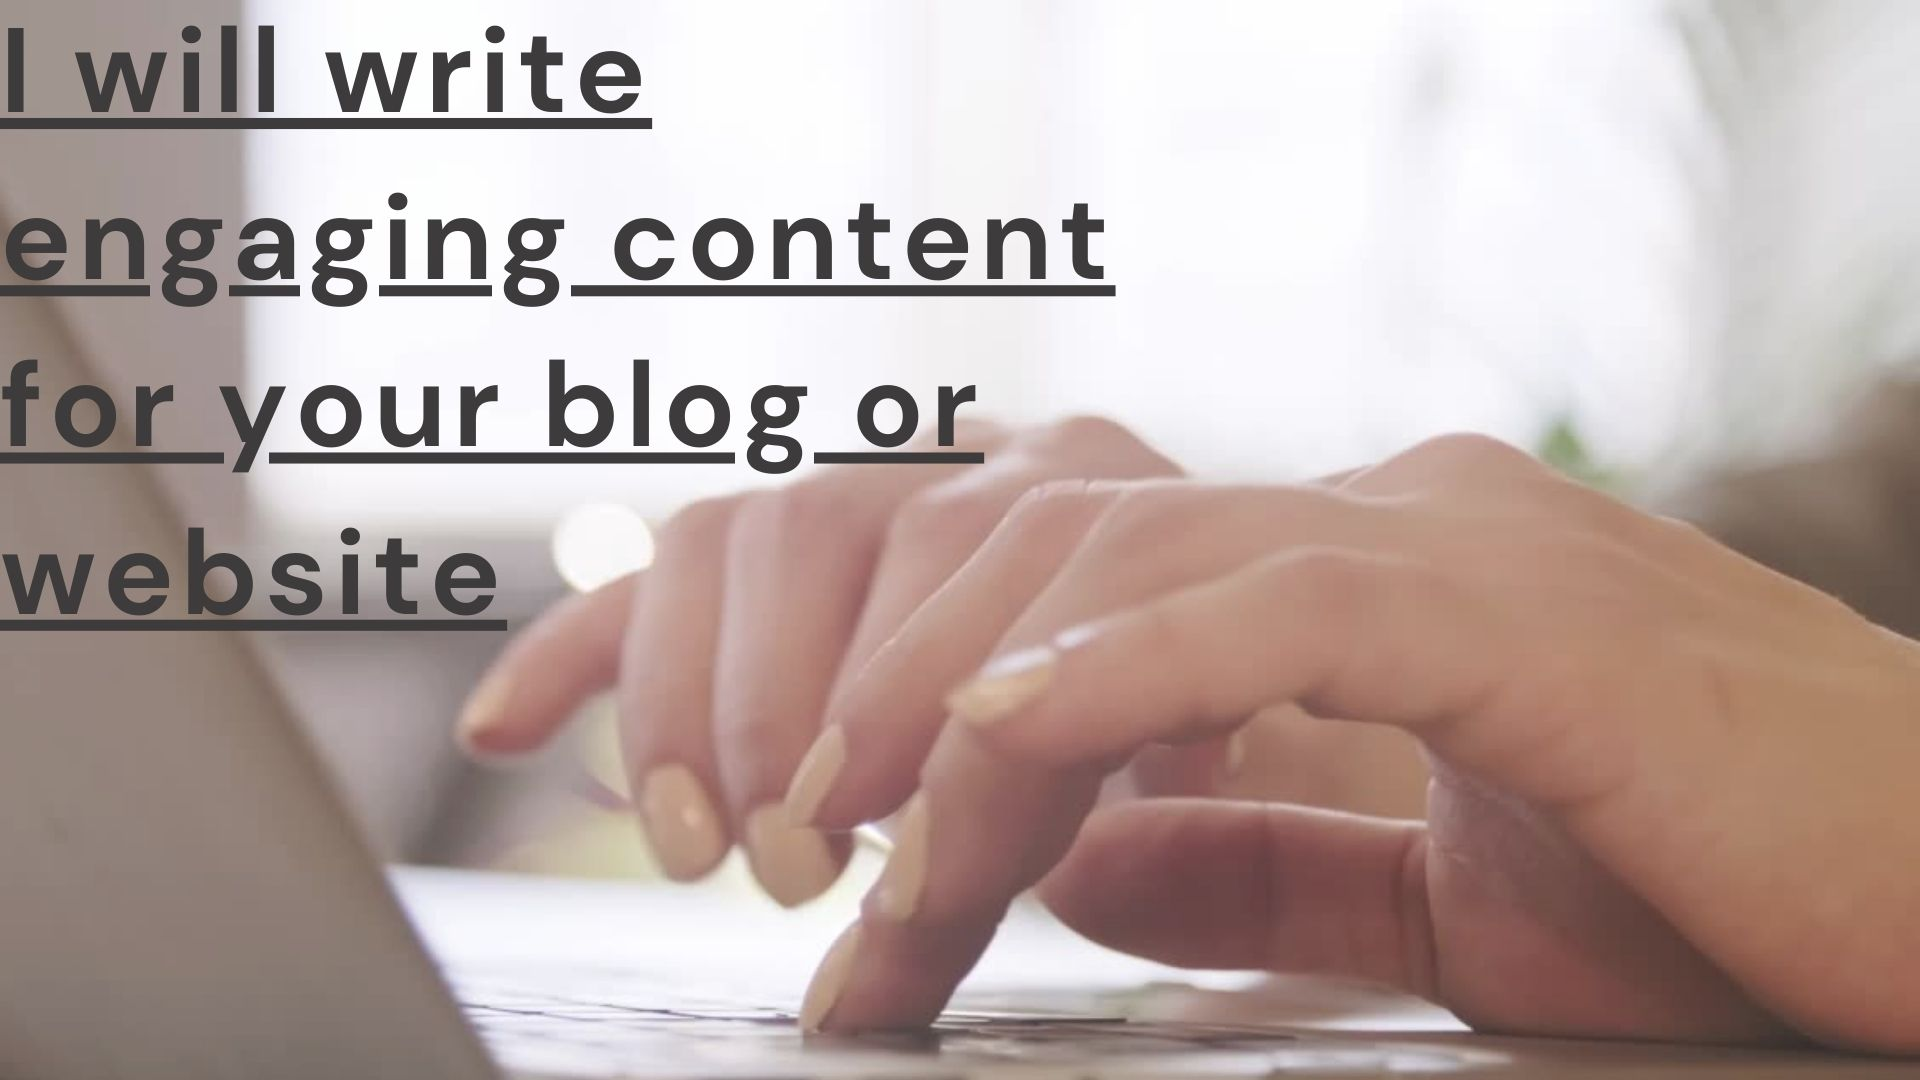 I will write engaging content for your blog or website